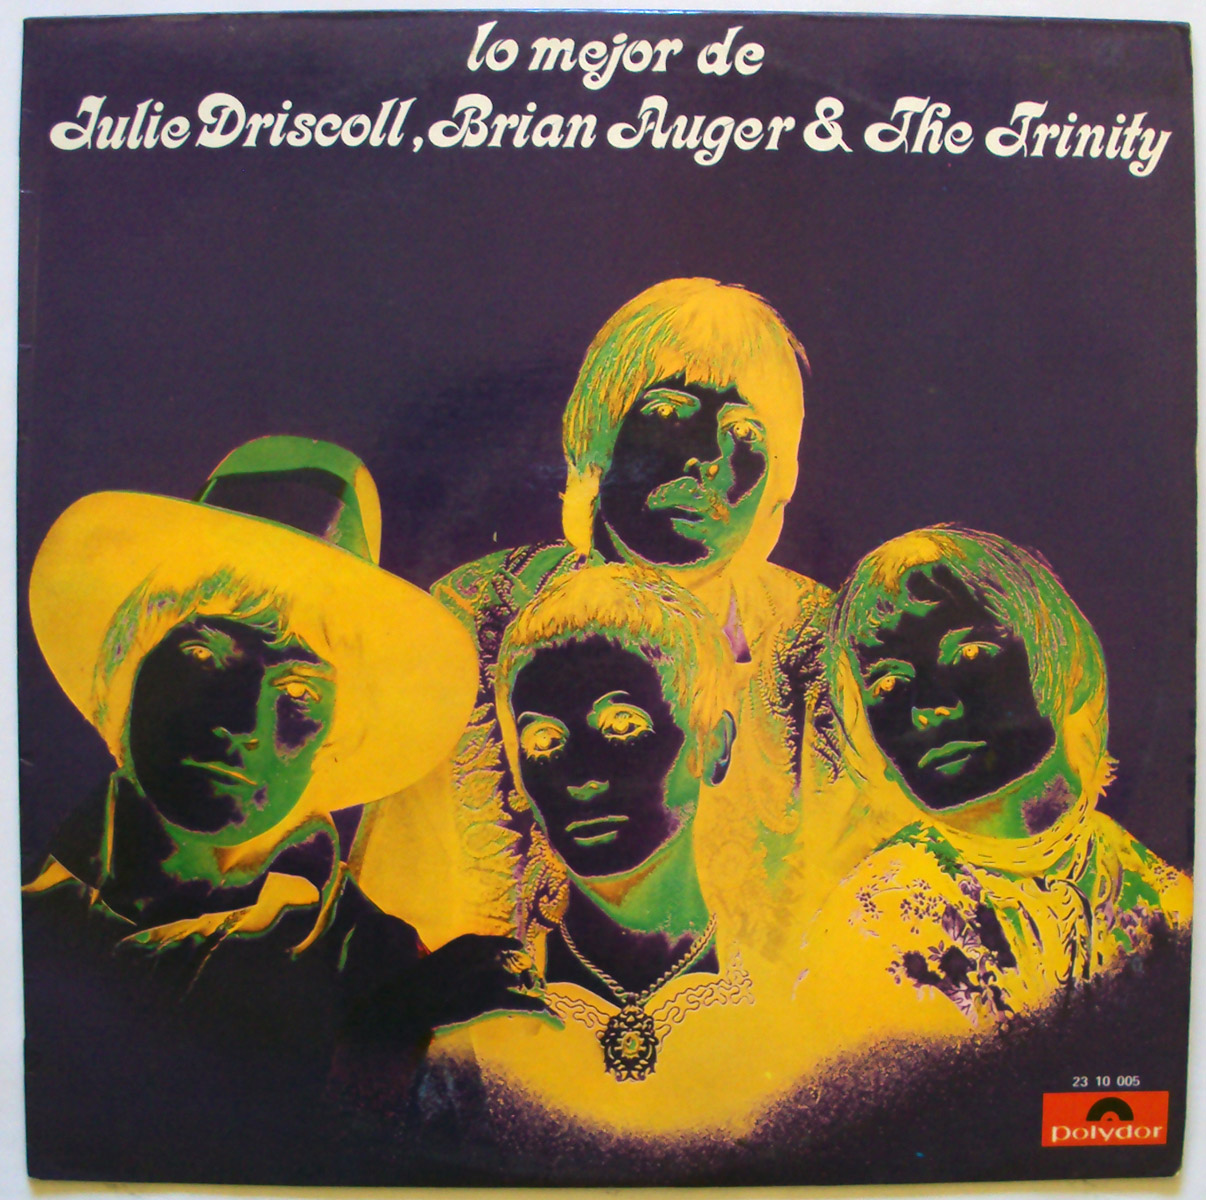 Julie Driscoll, Brian Auger & The Trinity lo mejor de (the best of)